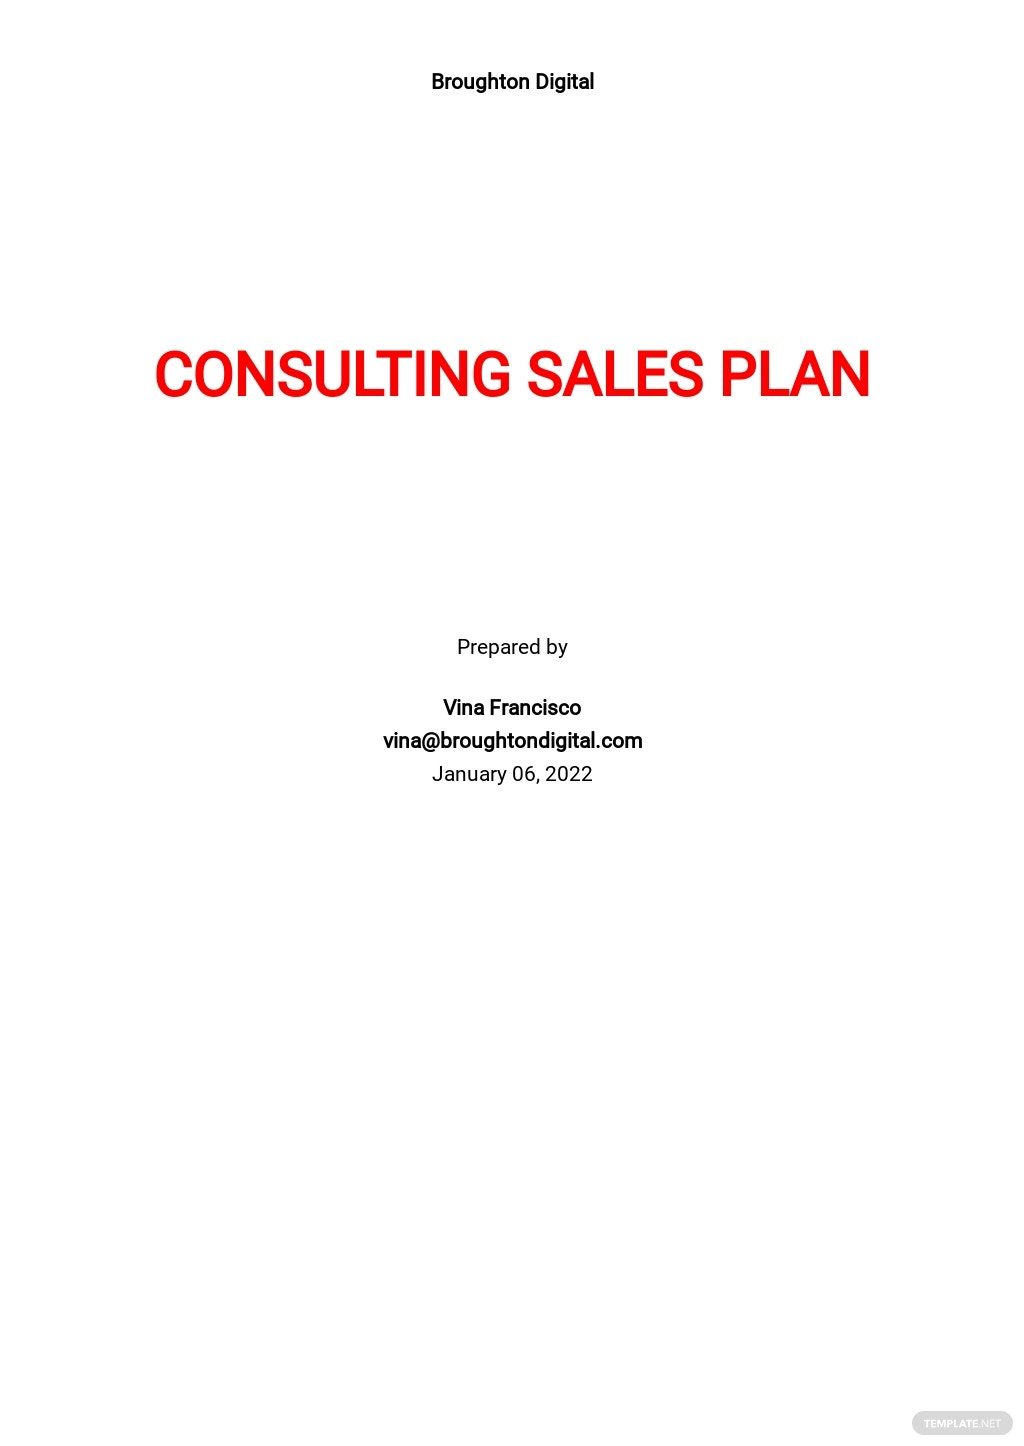 Consulting Sales Plan Template